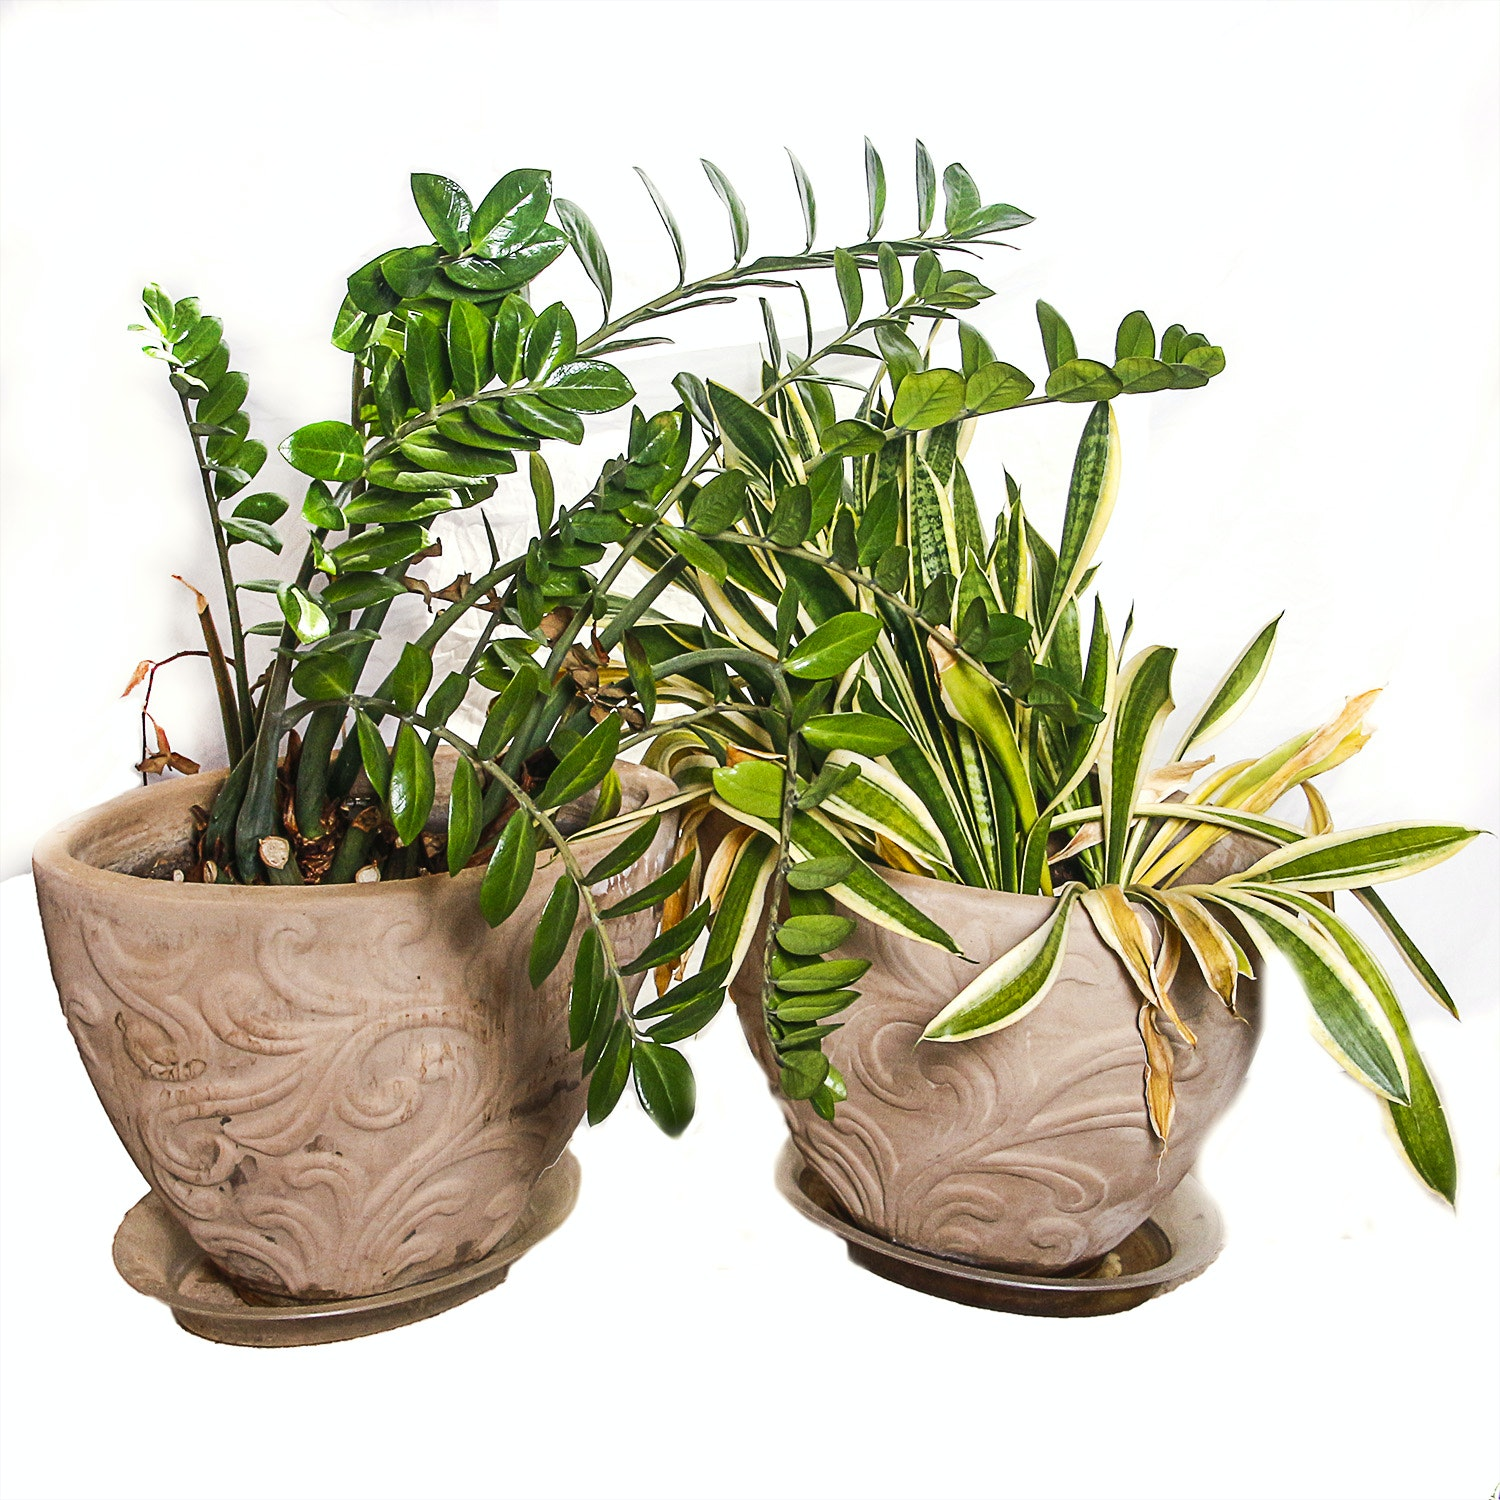 Terracotta Planters with Live Plants